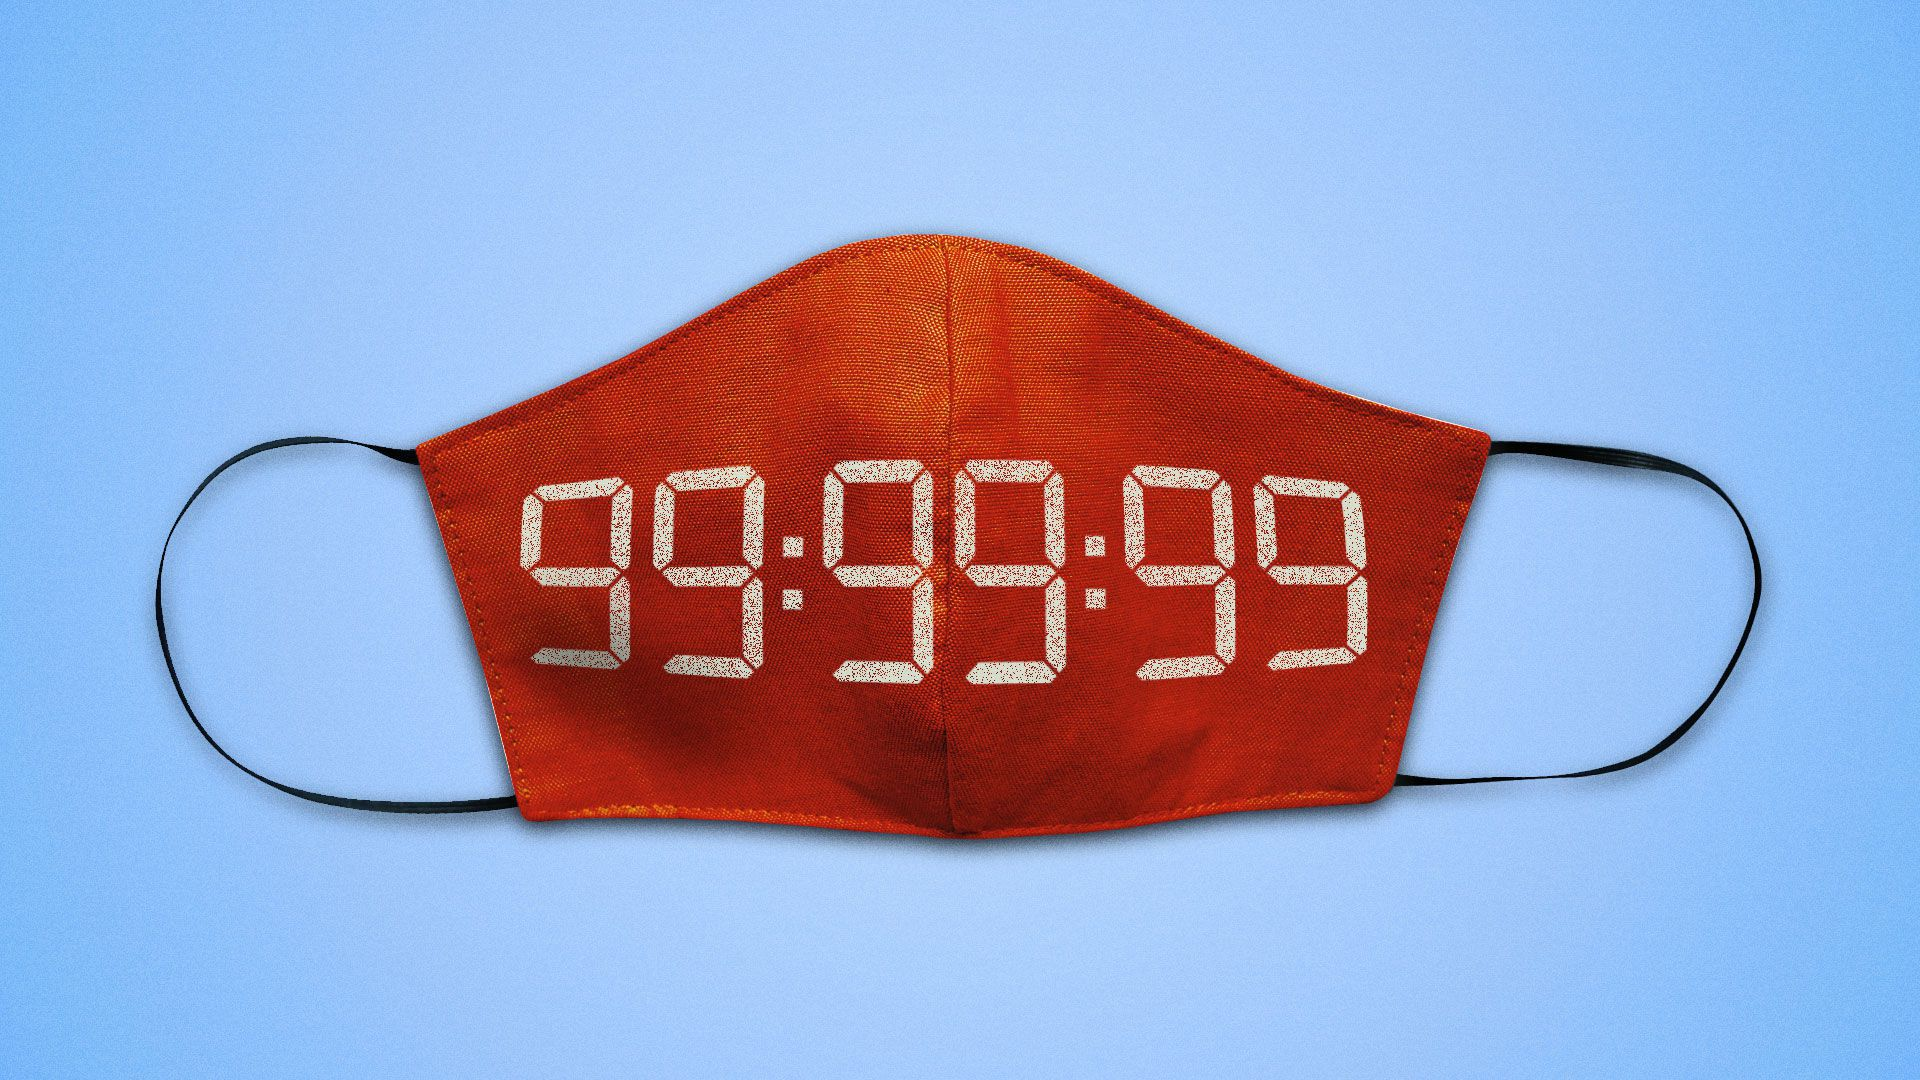 Illustration of a face mask with an alarm clock set to 99:99:99